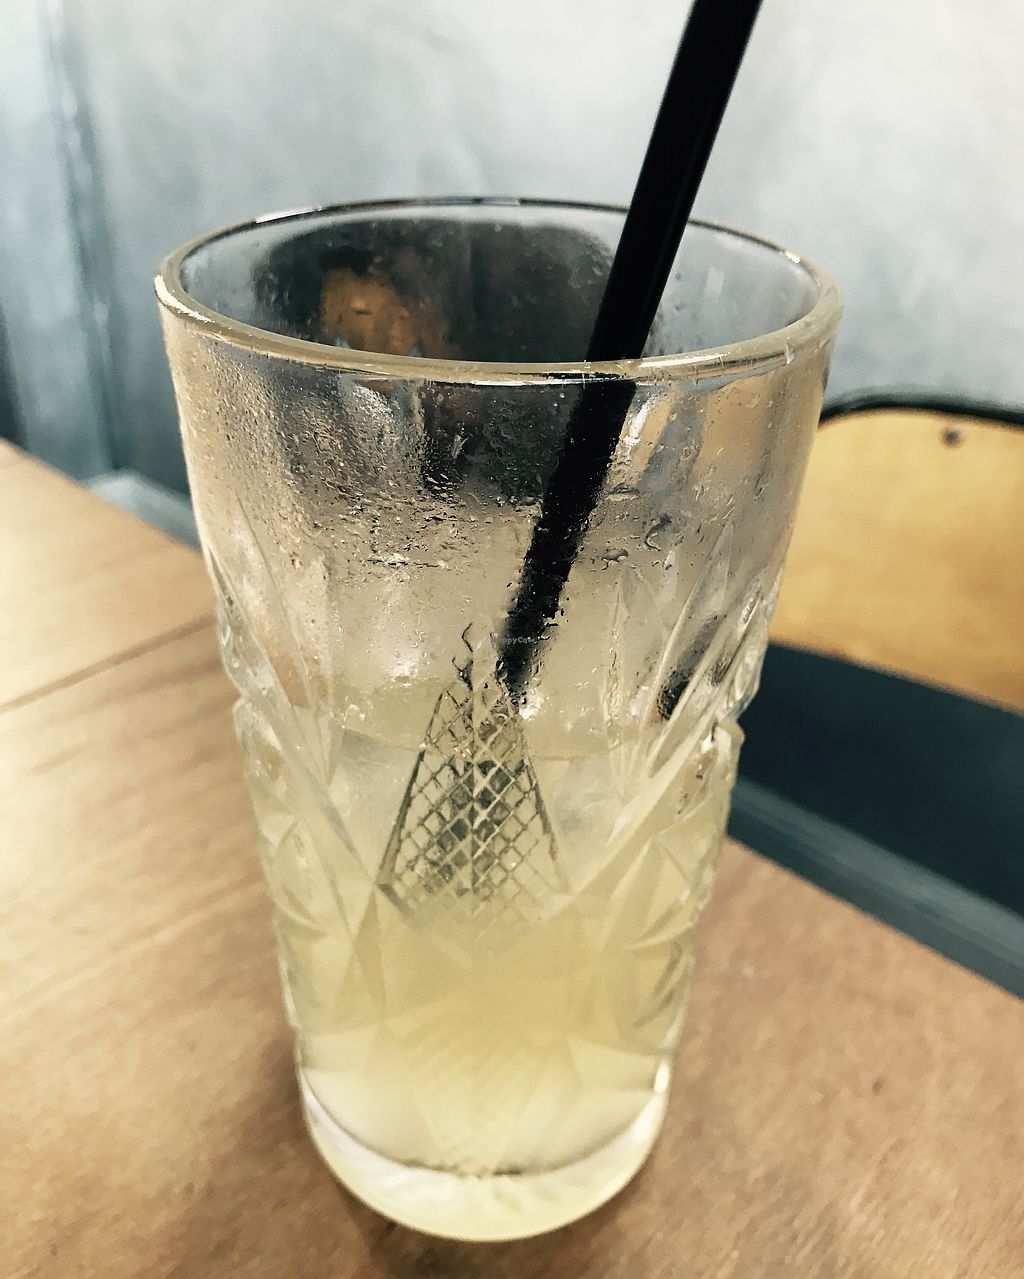 """Photo of Craft Brew House  by <a href=""""/members/profile/NirvanaRoseWilliams"""">NirvanaRoseWilliams</a> <br/>Ginger beer <br/> June 24, 2017  - <a href='/contact/abuse/image/94194/272951'>Report</a>"""